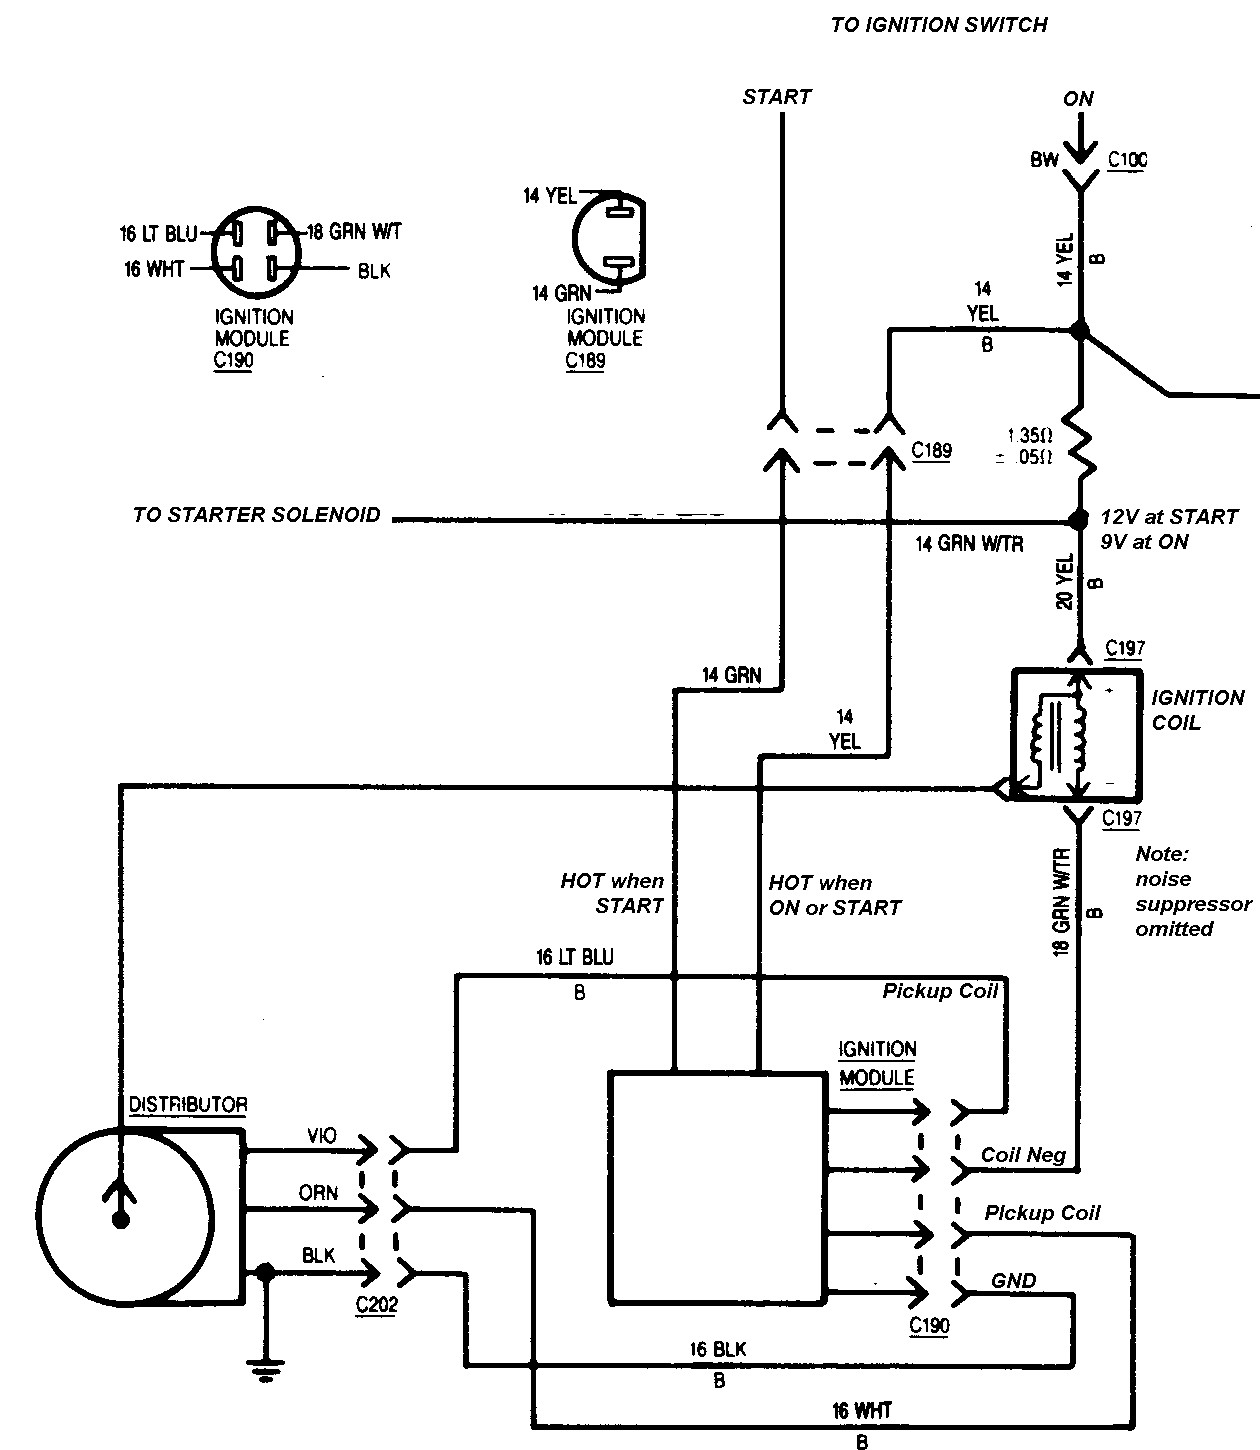 hight resolution of chevy 4 3 wiring harness wiring diagram diagram moreover 350 chevy engine likewise chevy fuel pump wiring